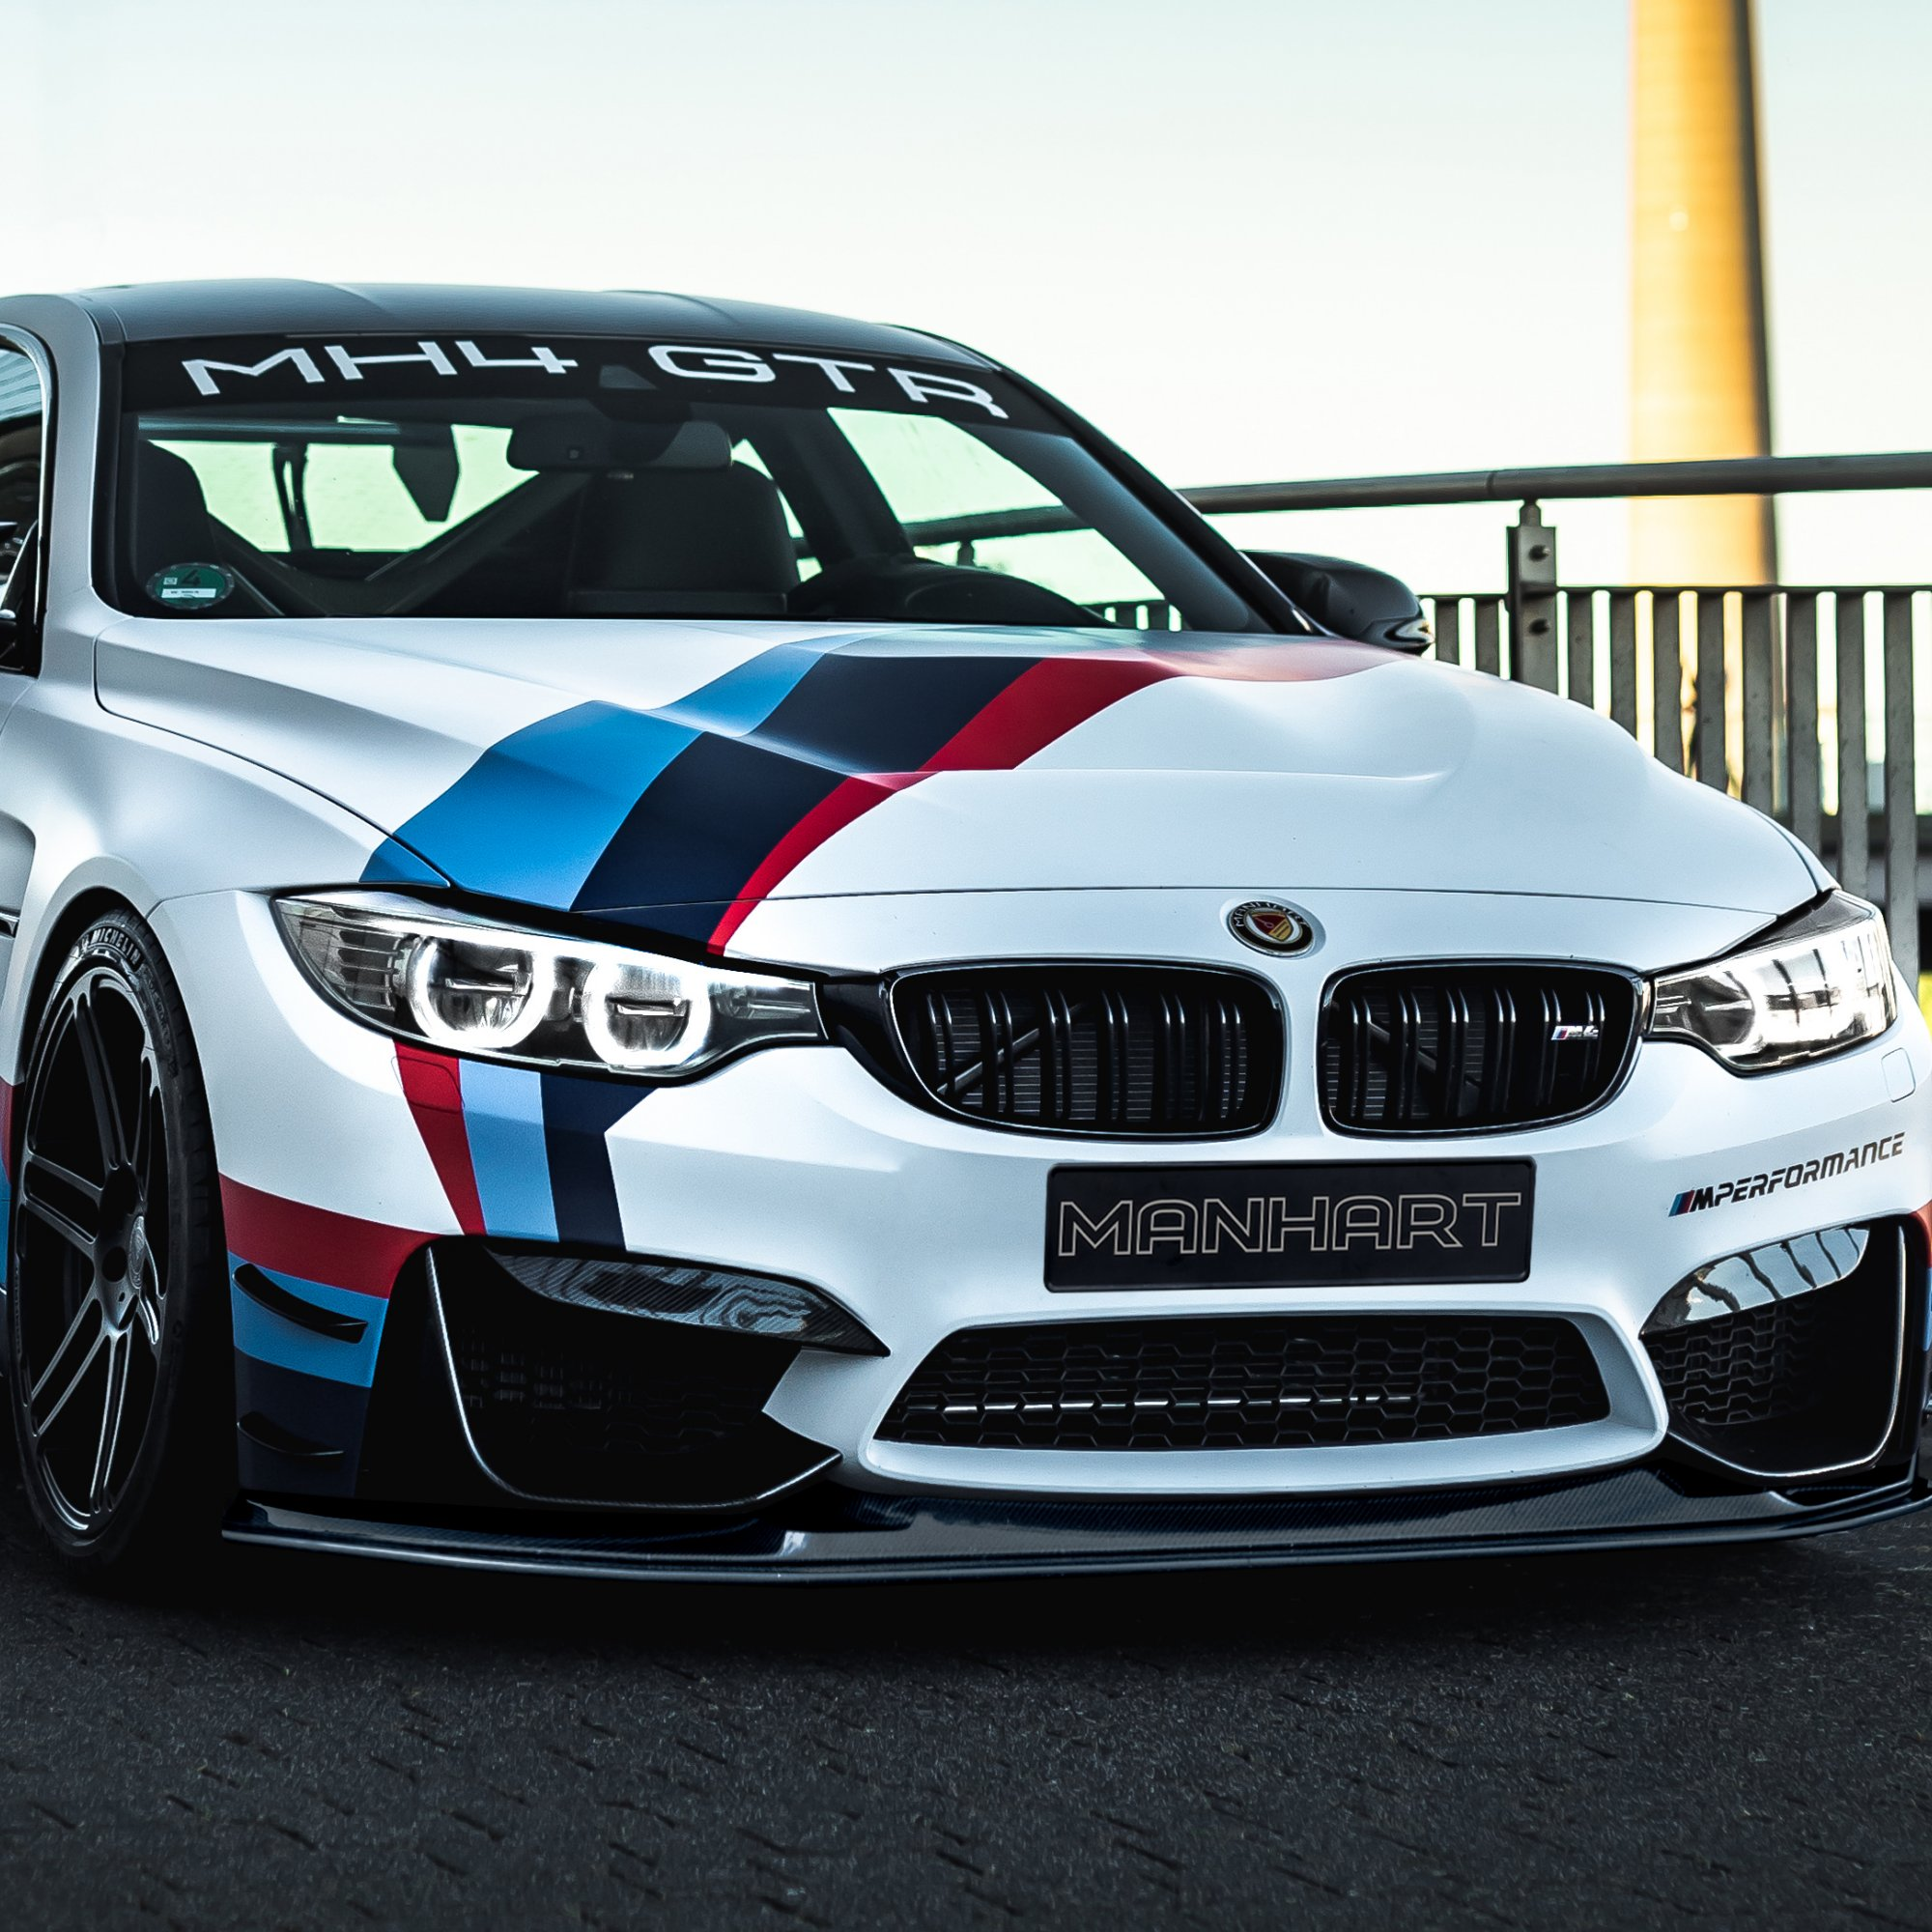 Manhart Carbon Hood Gts Style Bmw F8x M3 M4 Competition Cs Gts M3 M4 Competition Cs Gts F80 F82 F83 M M Performance Bmw Manhart Performance Online Shop